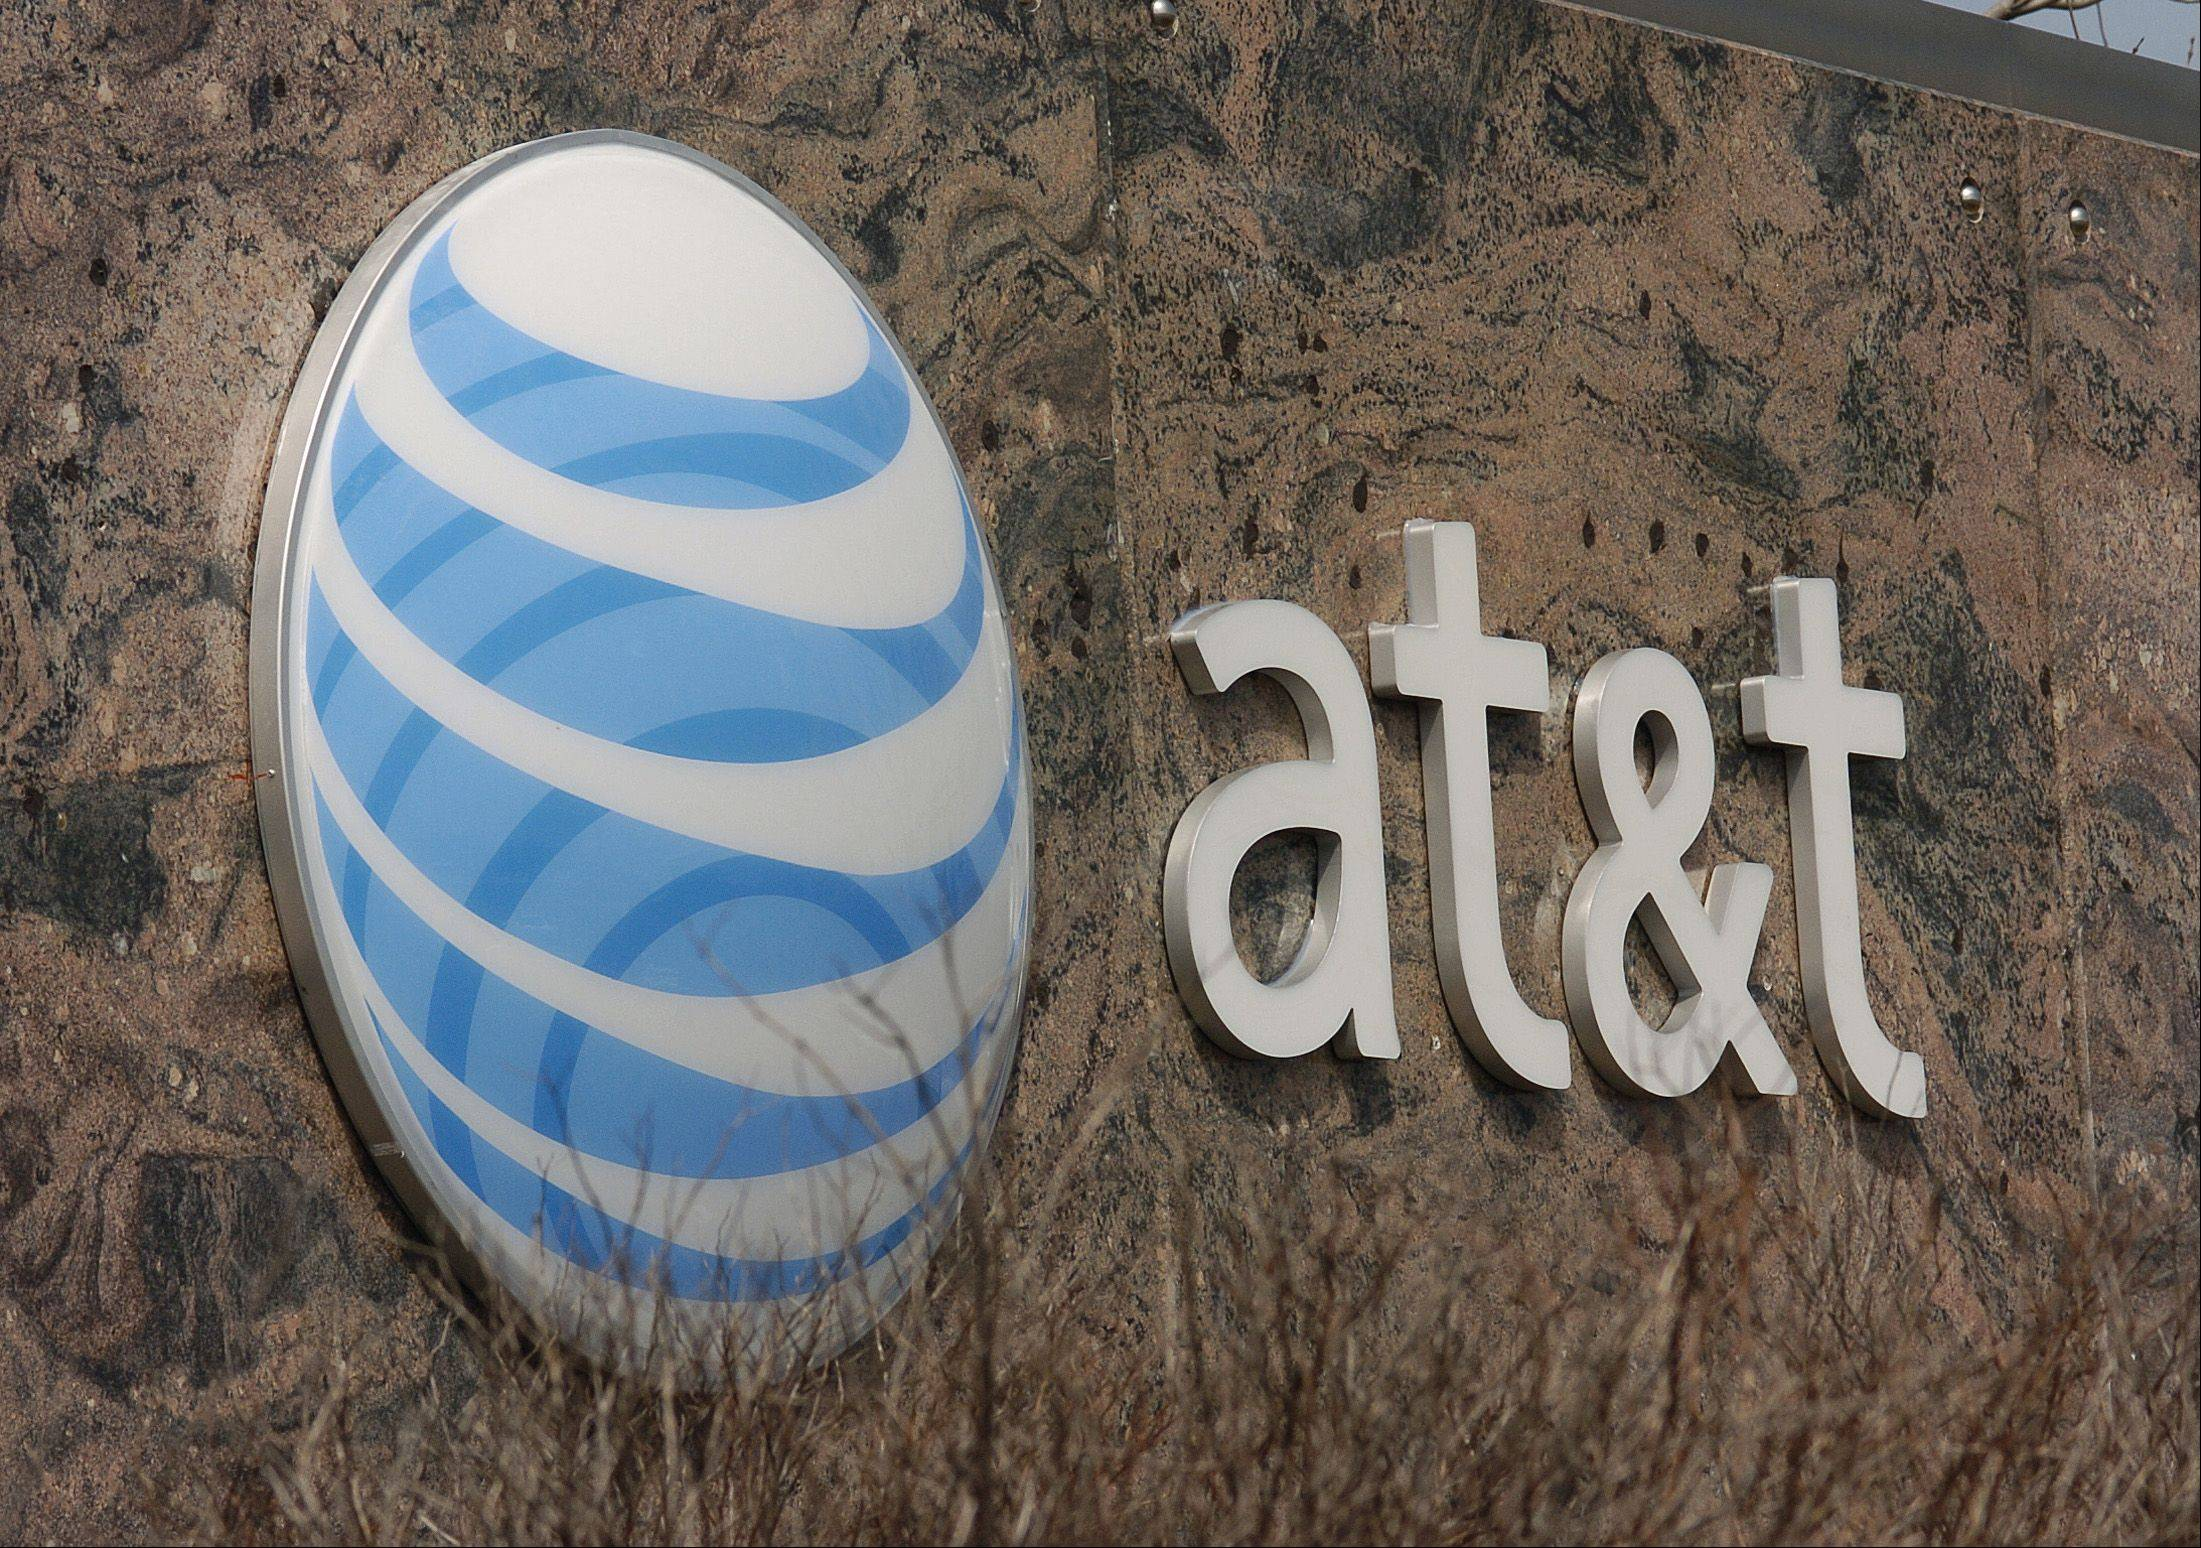 The AT&T signage in Hoffman Estates.